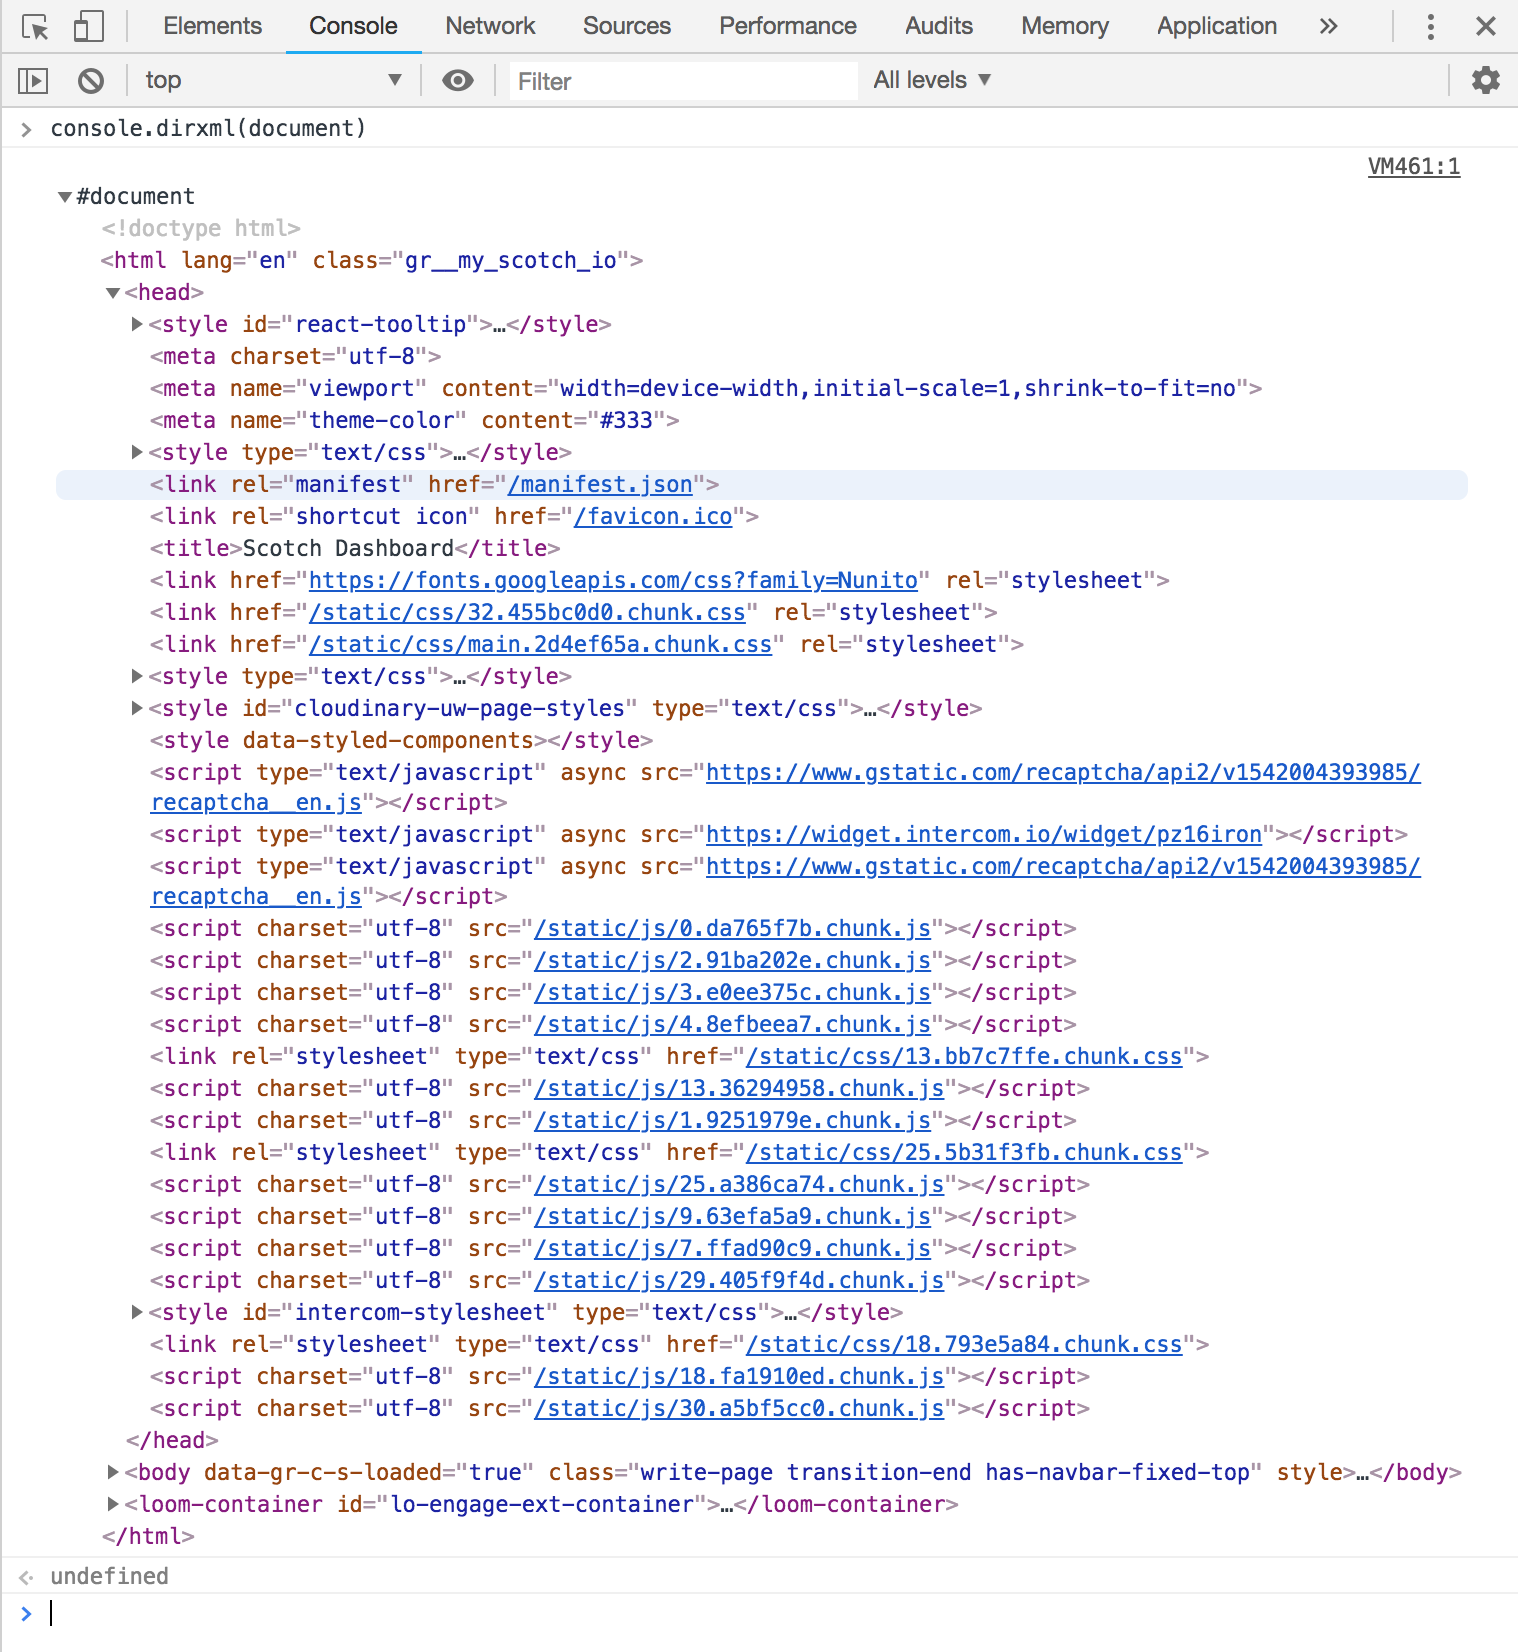 Screenshot of a nested series of HTML elements from the current website.